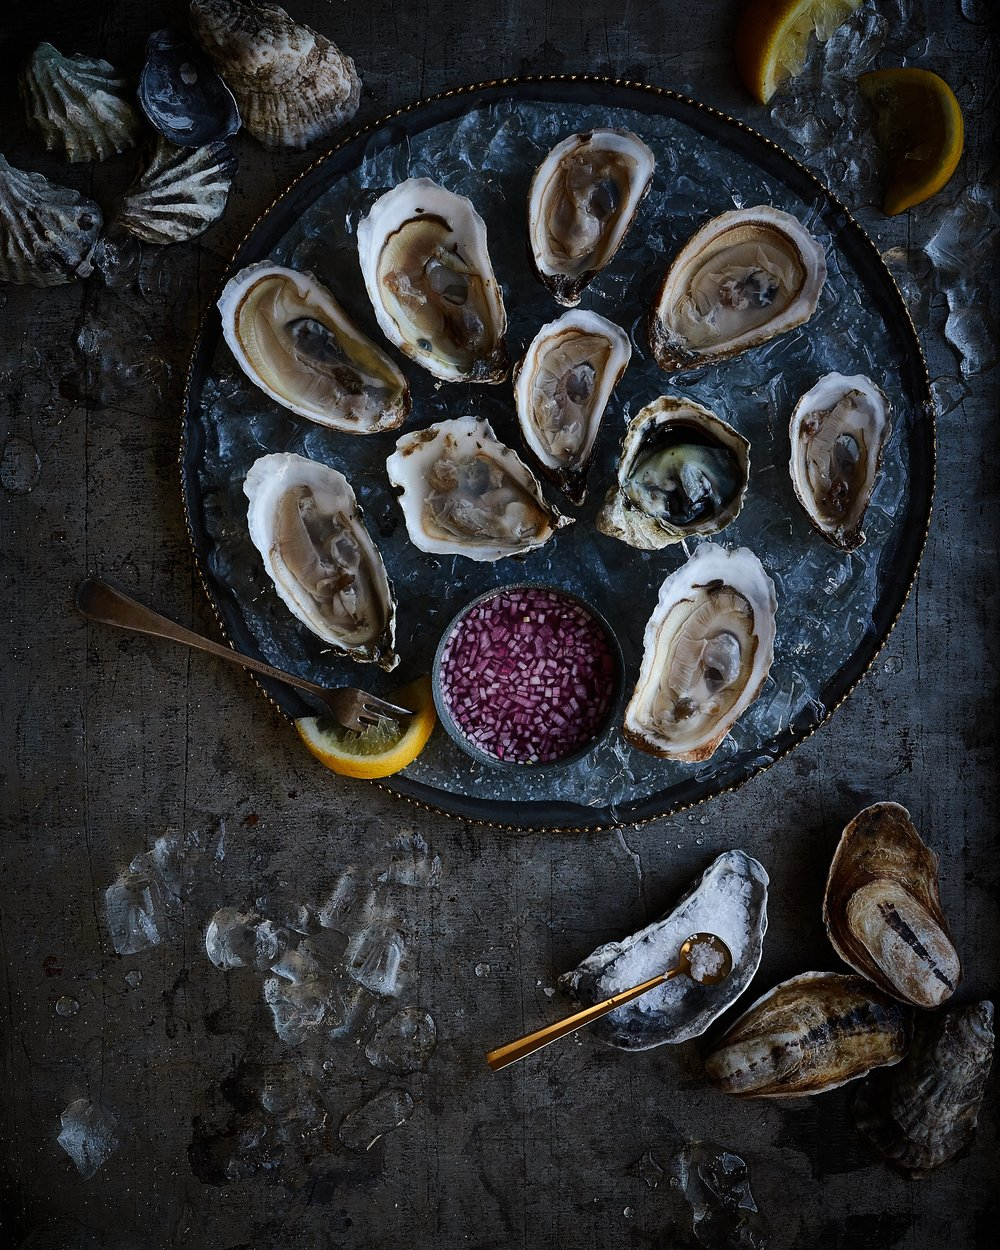 Oysters_013.jpg